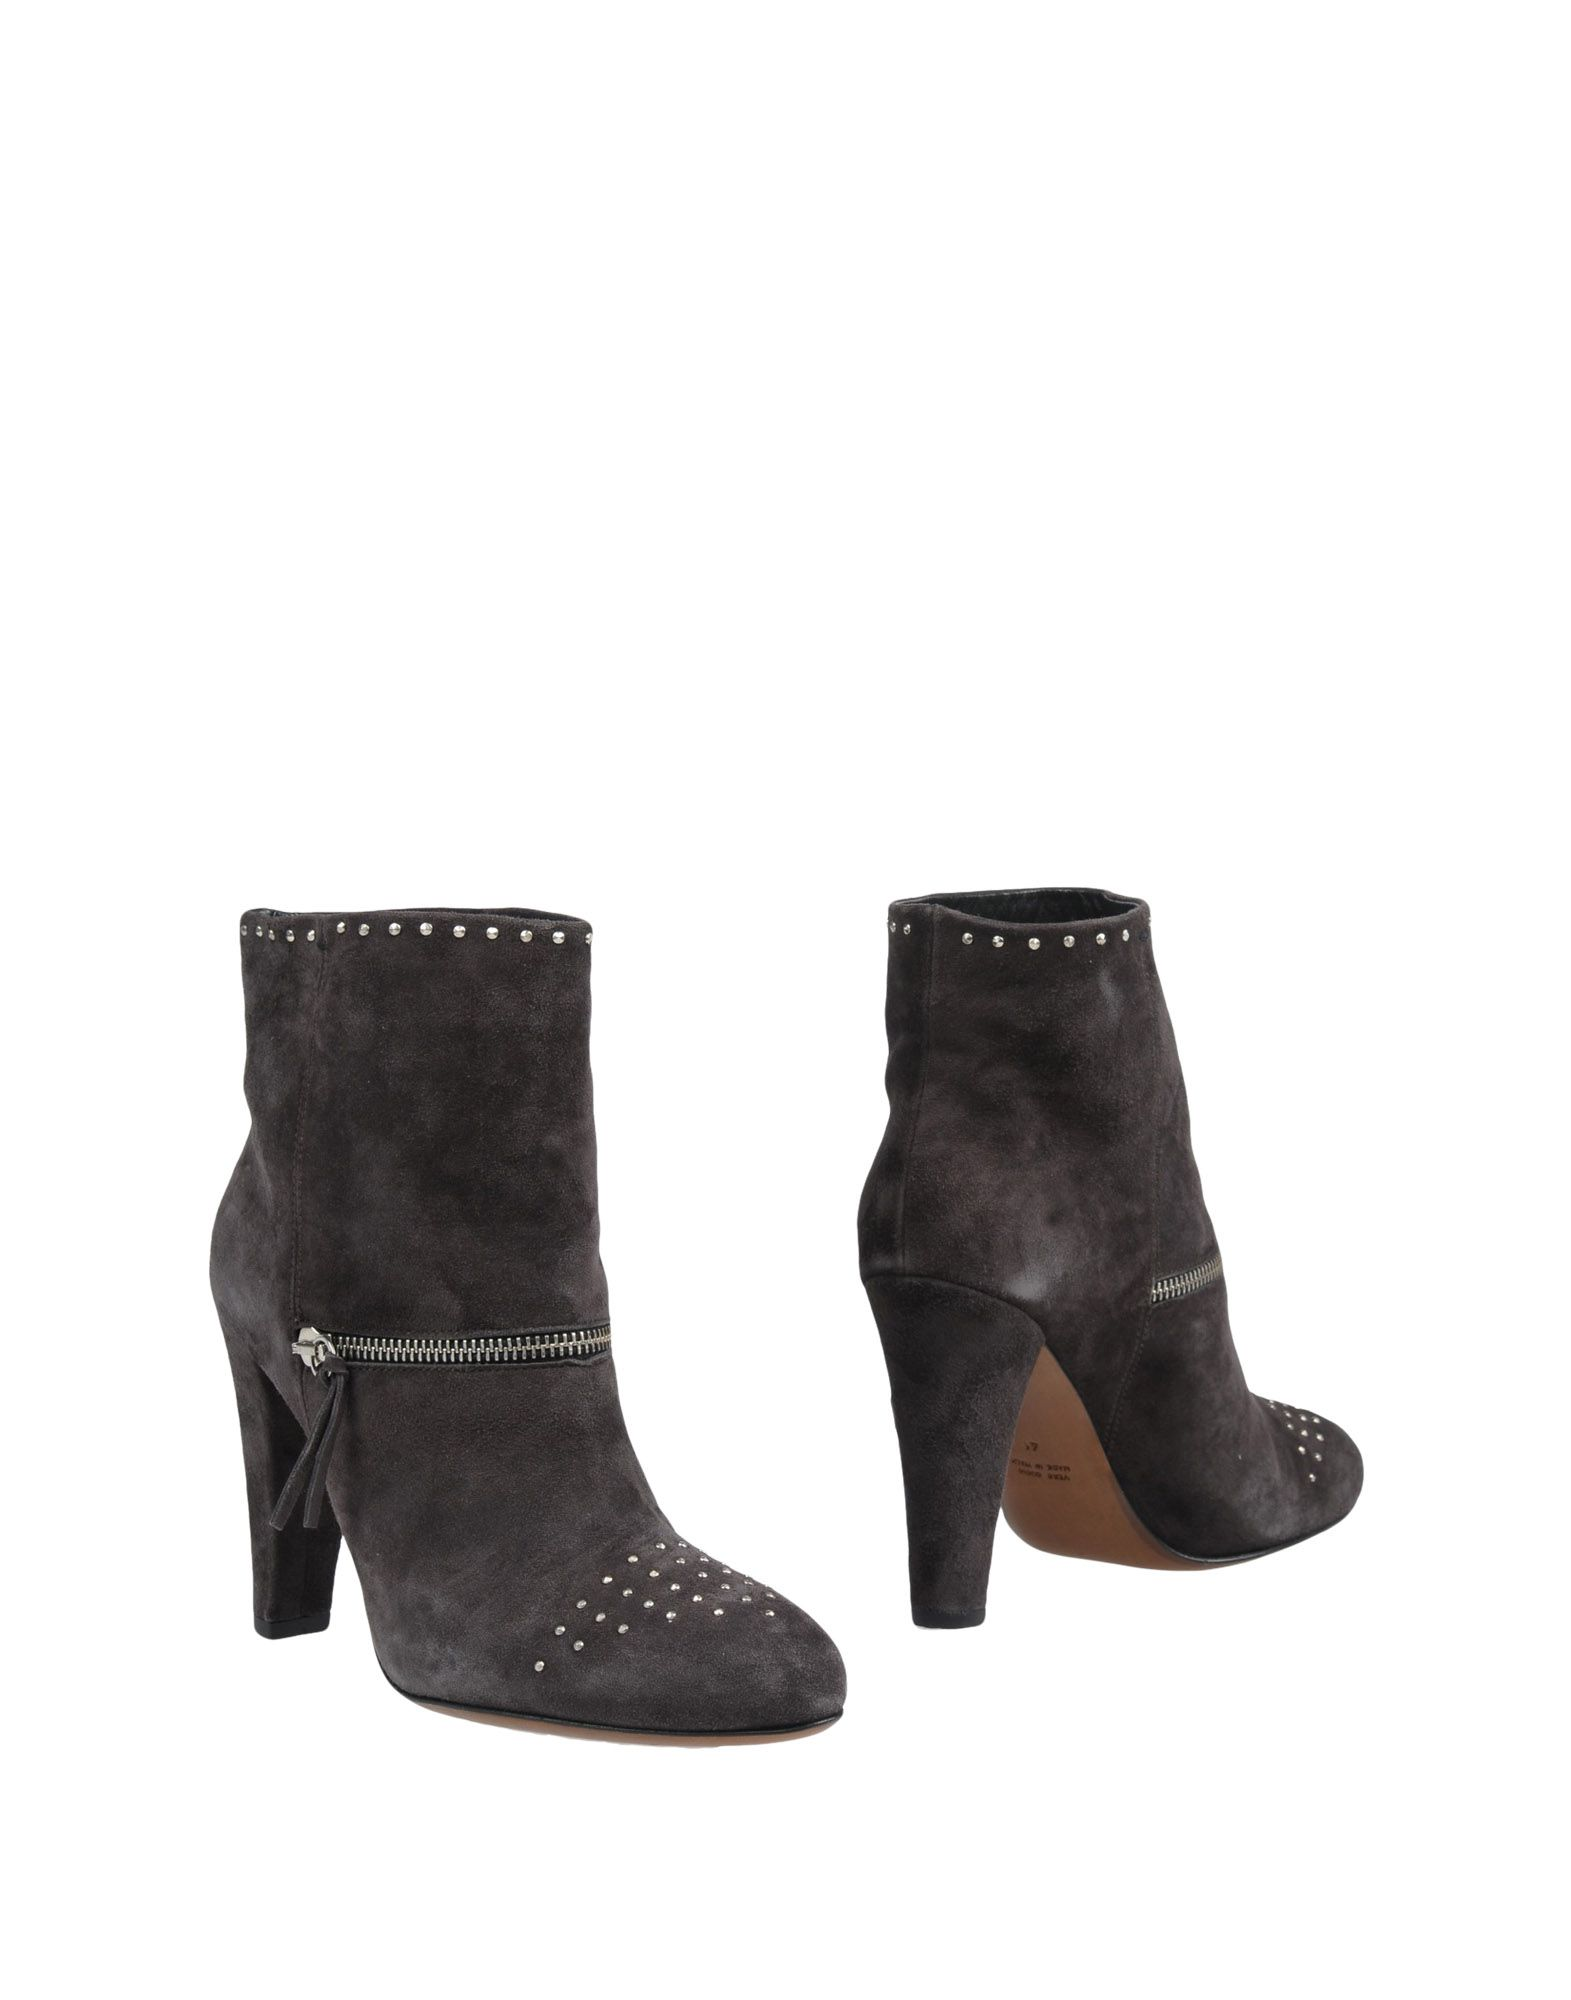 Garrice Ankle Boot - Women Garrice  Ankle Boots online on  Garrice United Kingdom - 11422316IJ de75e4